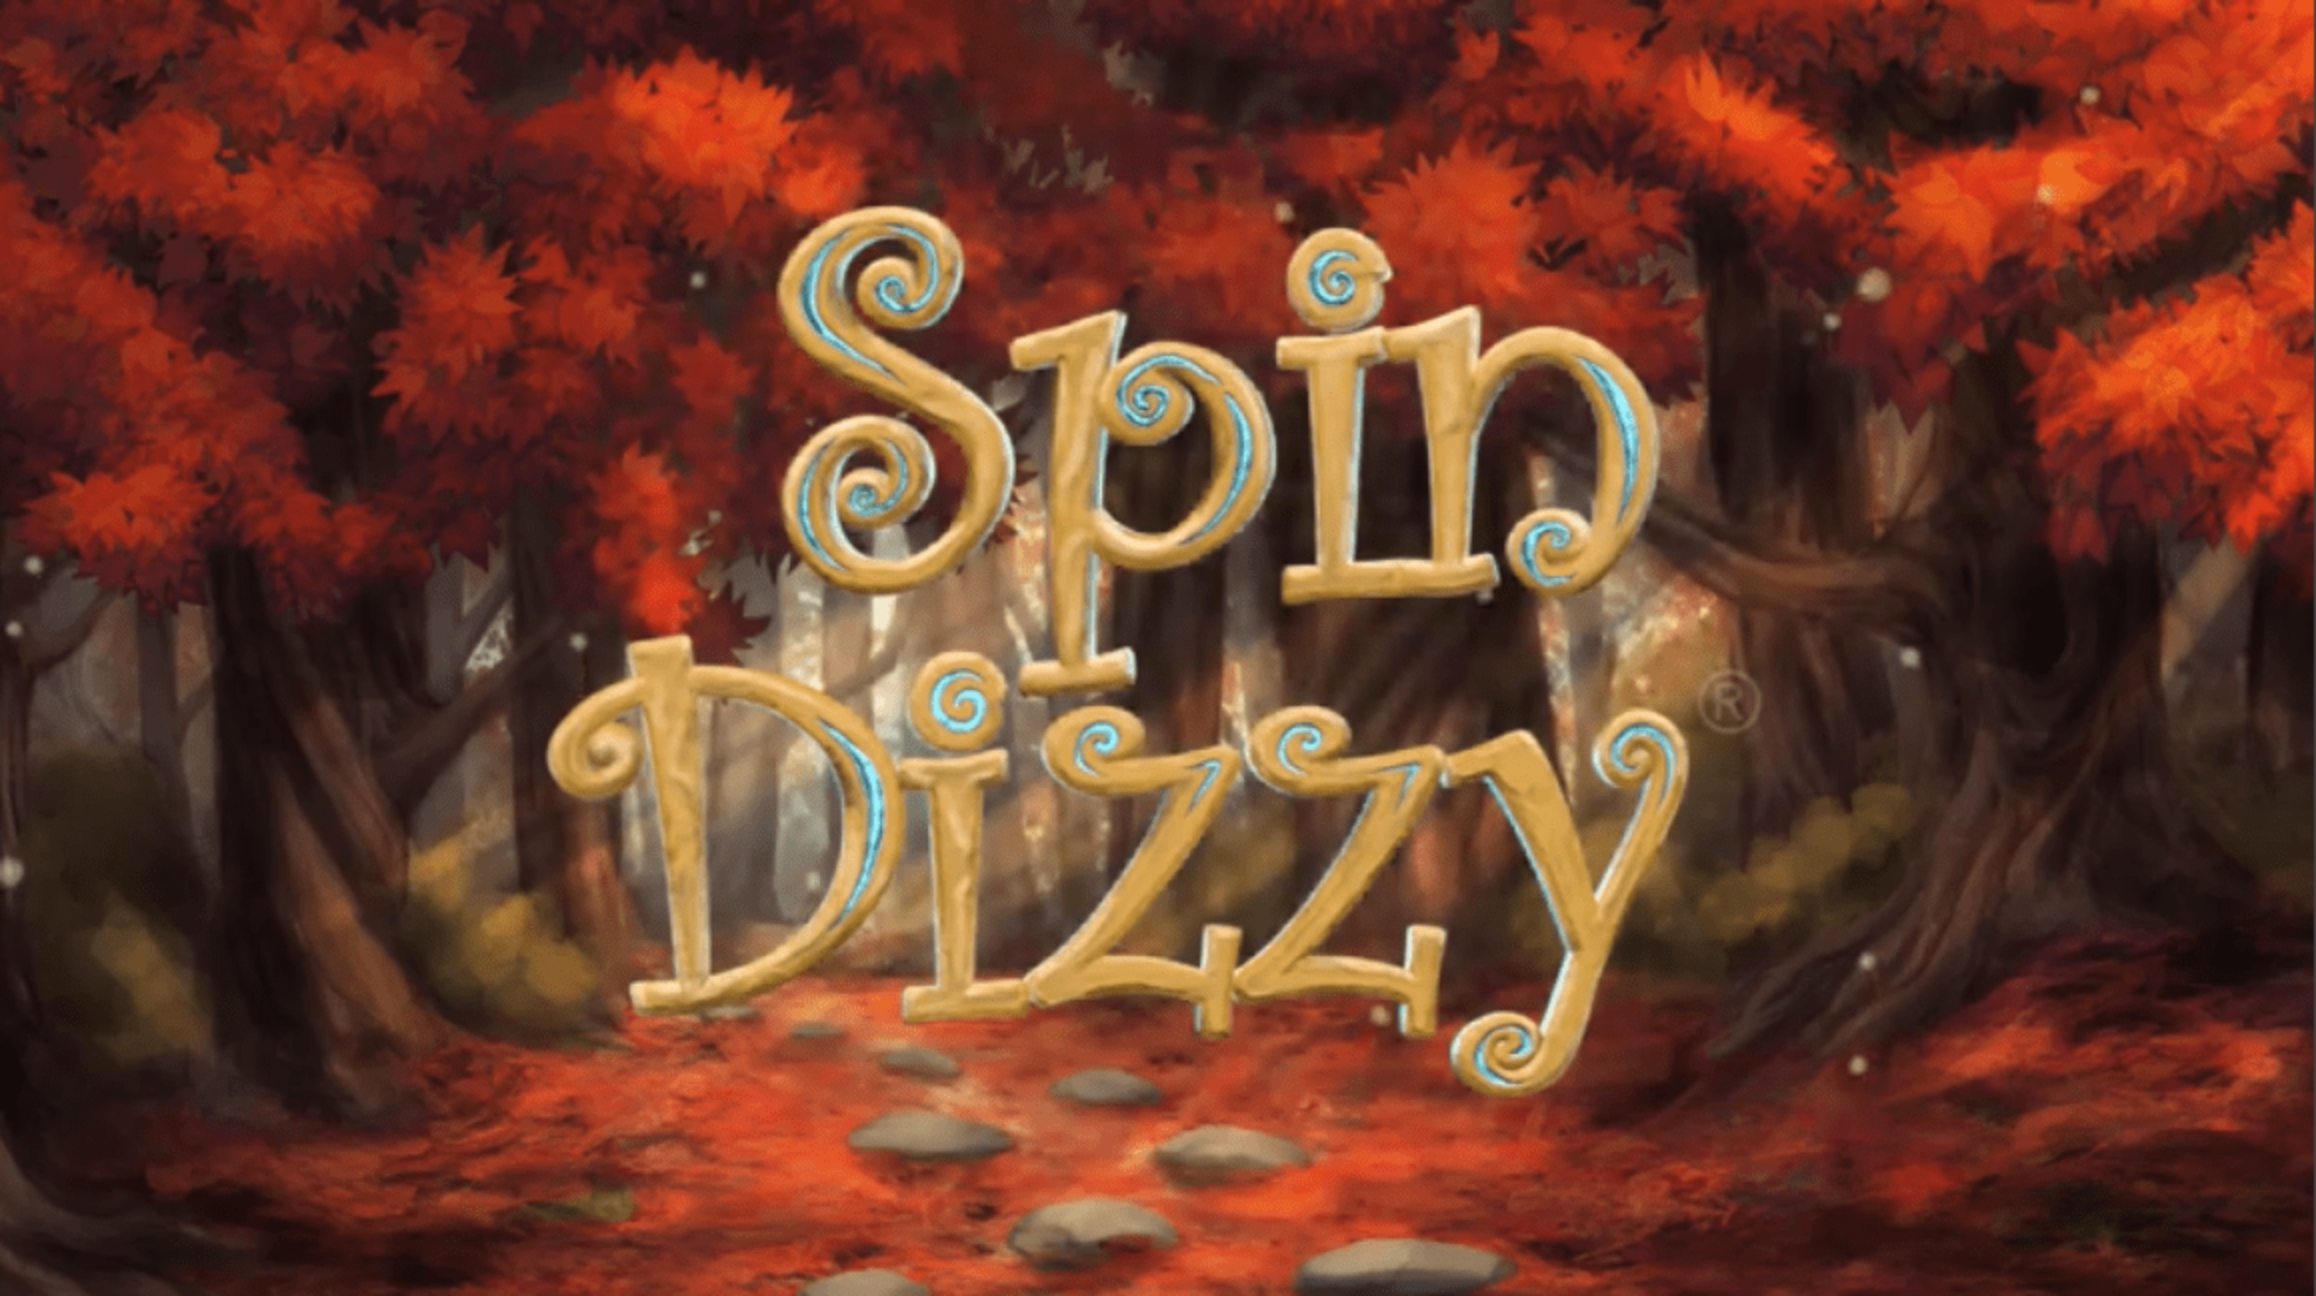 The Spin Dizzy Pull Tab Online Slot Demo Game by Realistic Games